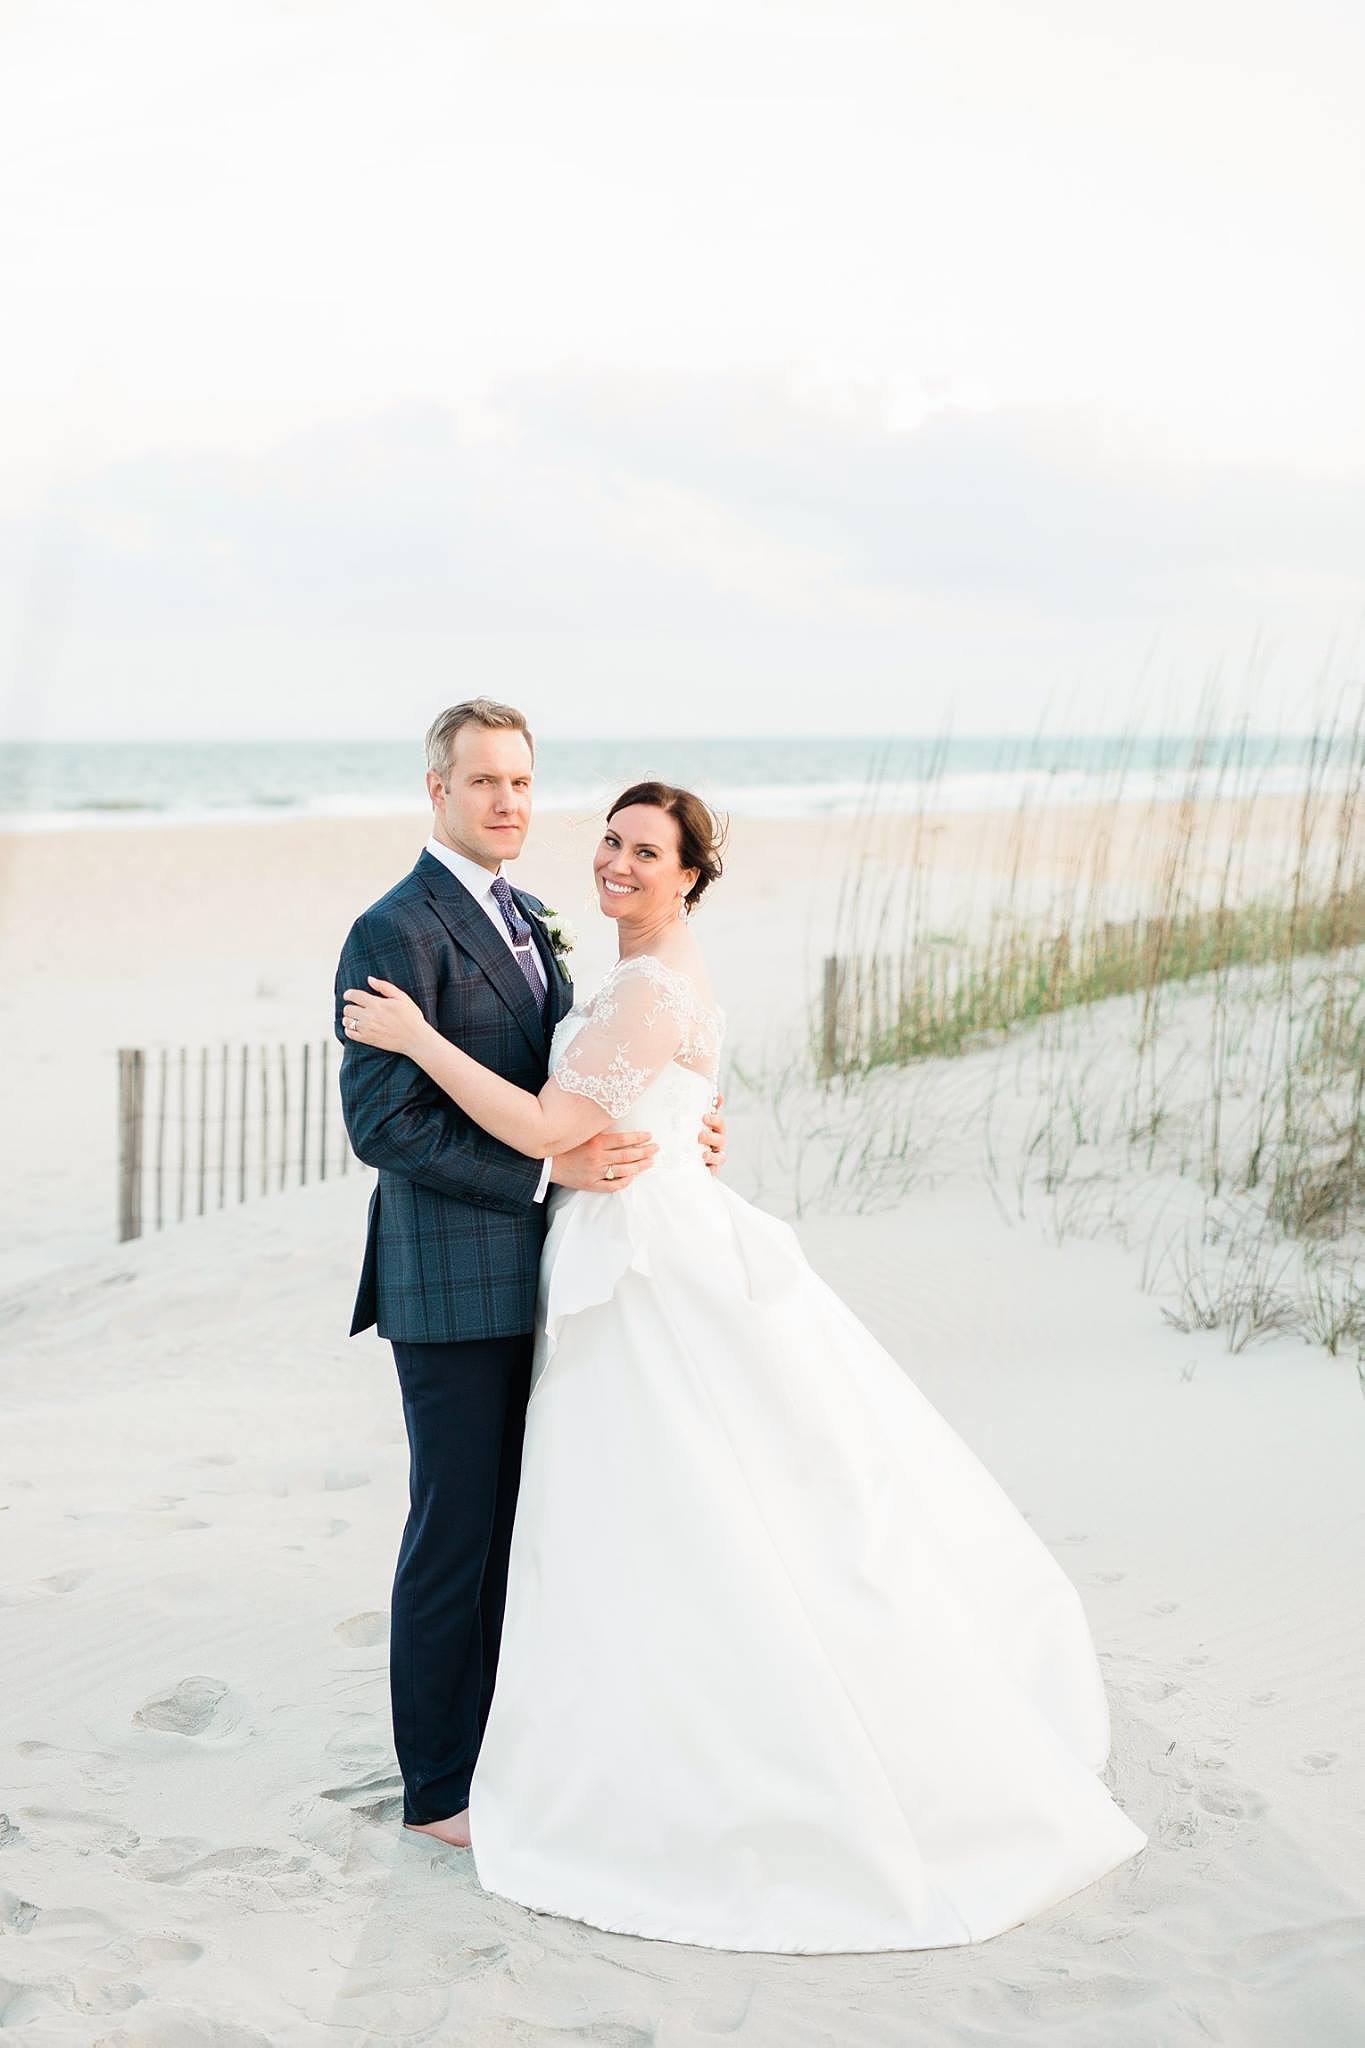 wedding beach picture in myrtle beach